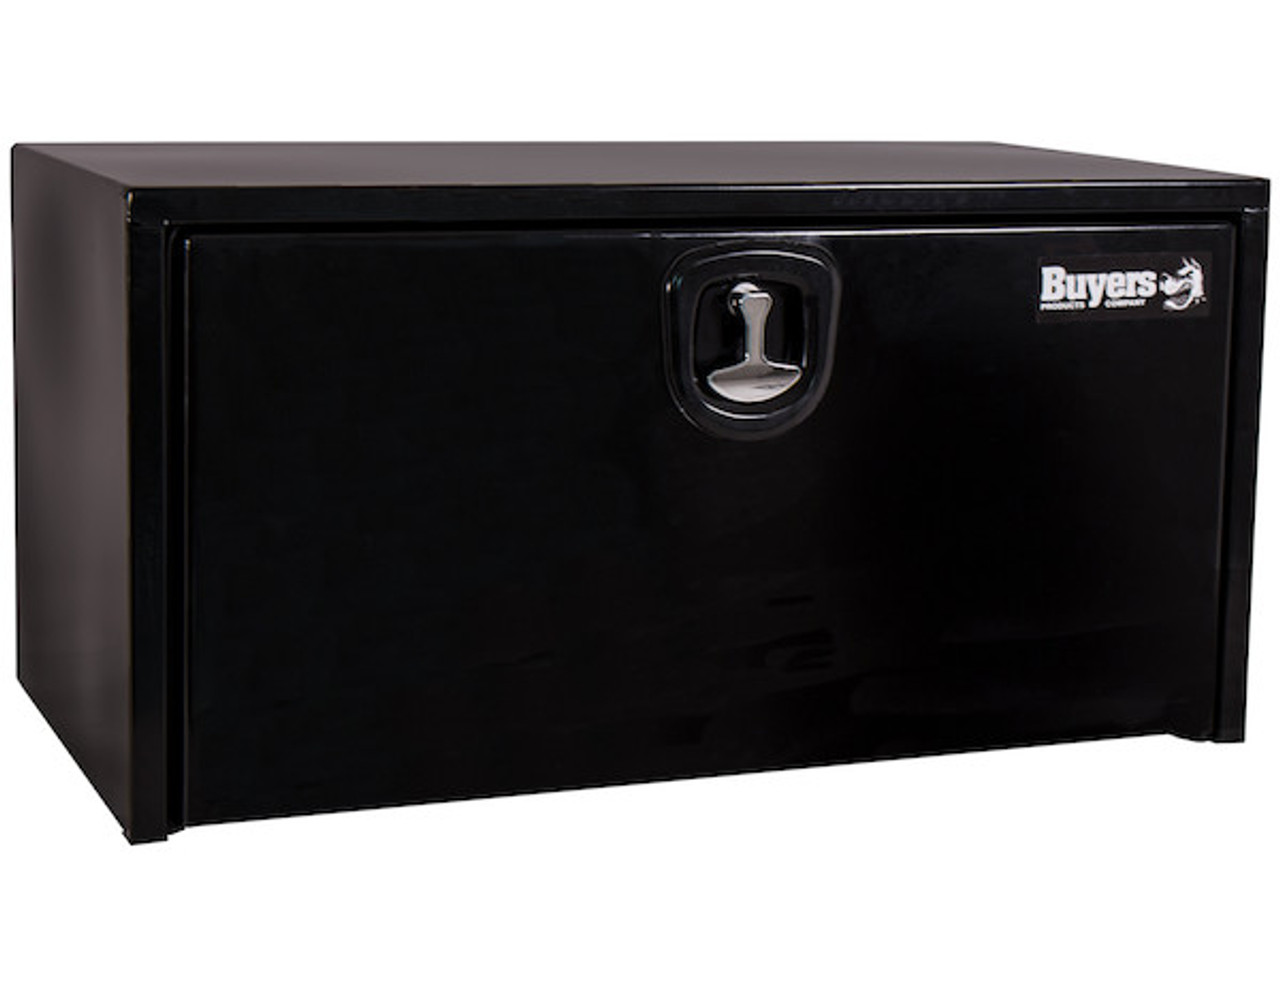 """1734305 BUYERS PRODUCTS BLACK STEEL UNDERBODY TRUCK TOOLBOX WITH 3-POINT LATCH 24""""Hx24""""Dx36""""W"""